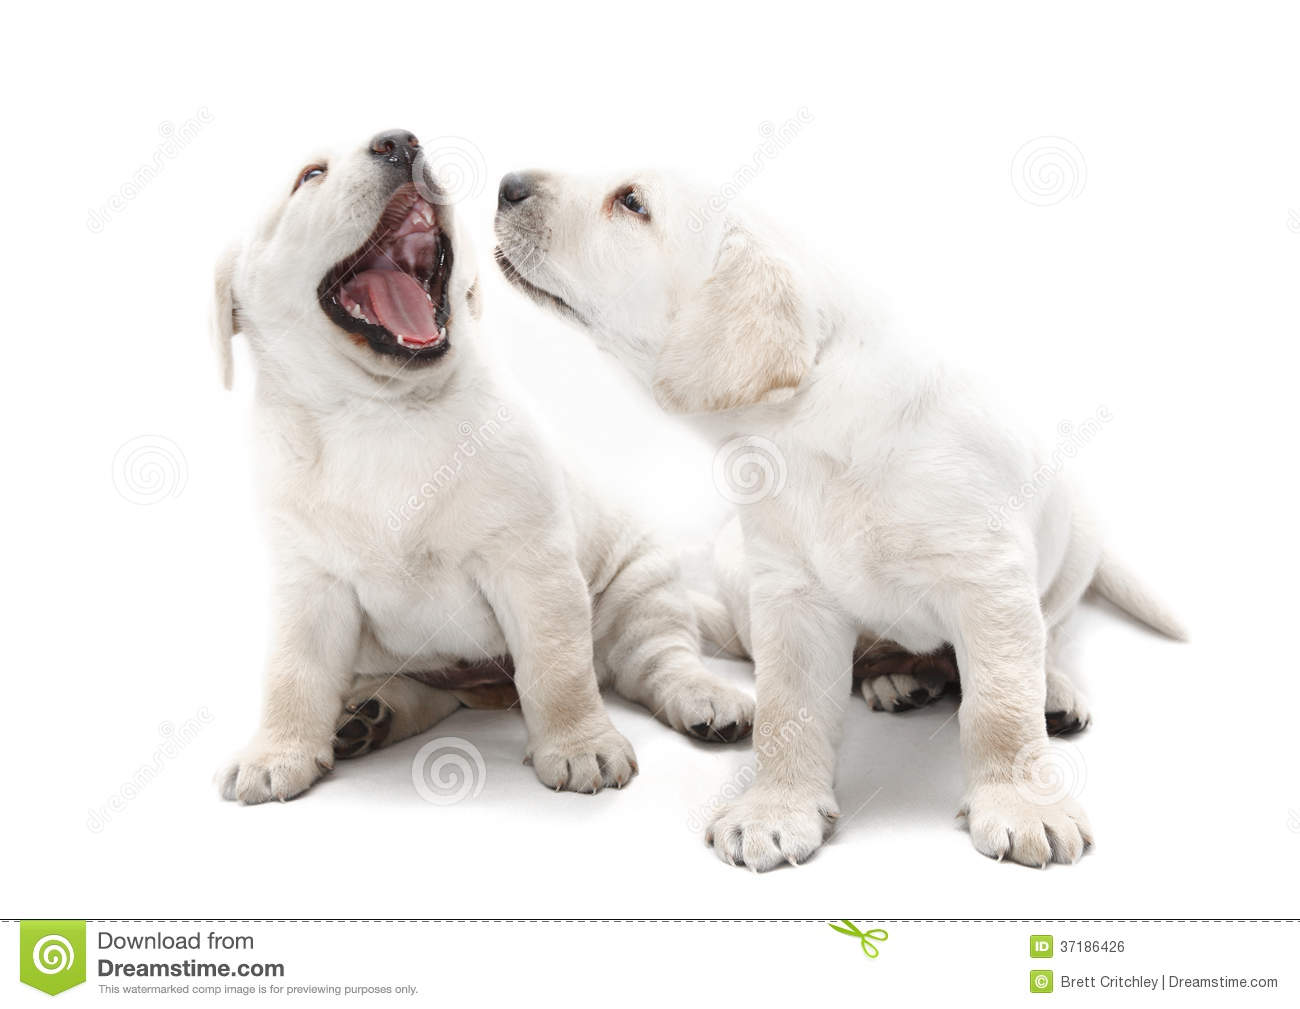 Bad Dog Breath Puppies Royalty Free Stock Image - Image: 37186426